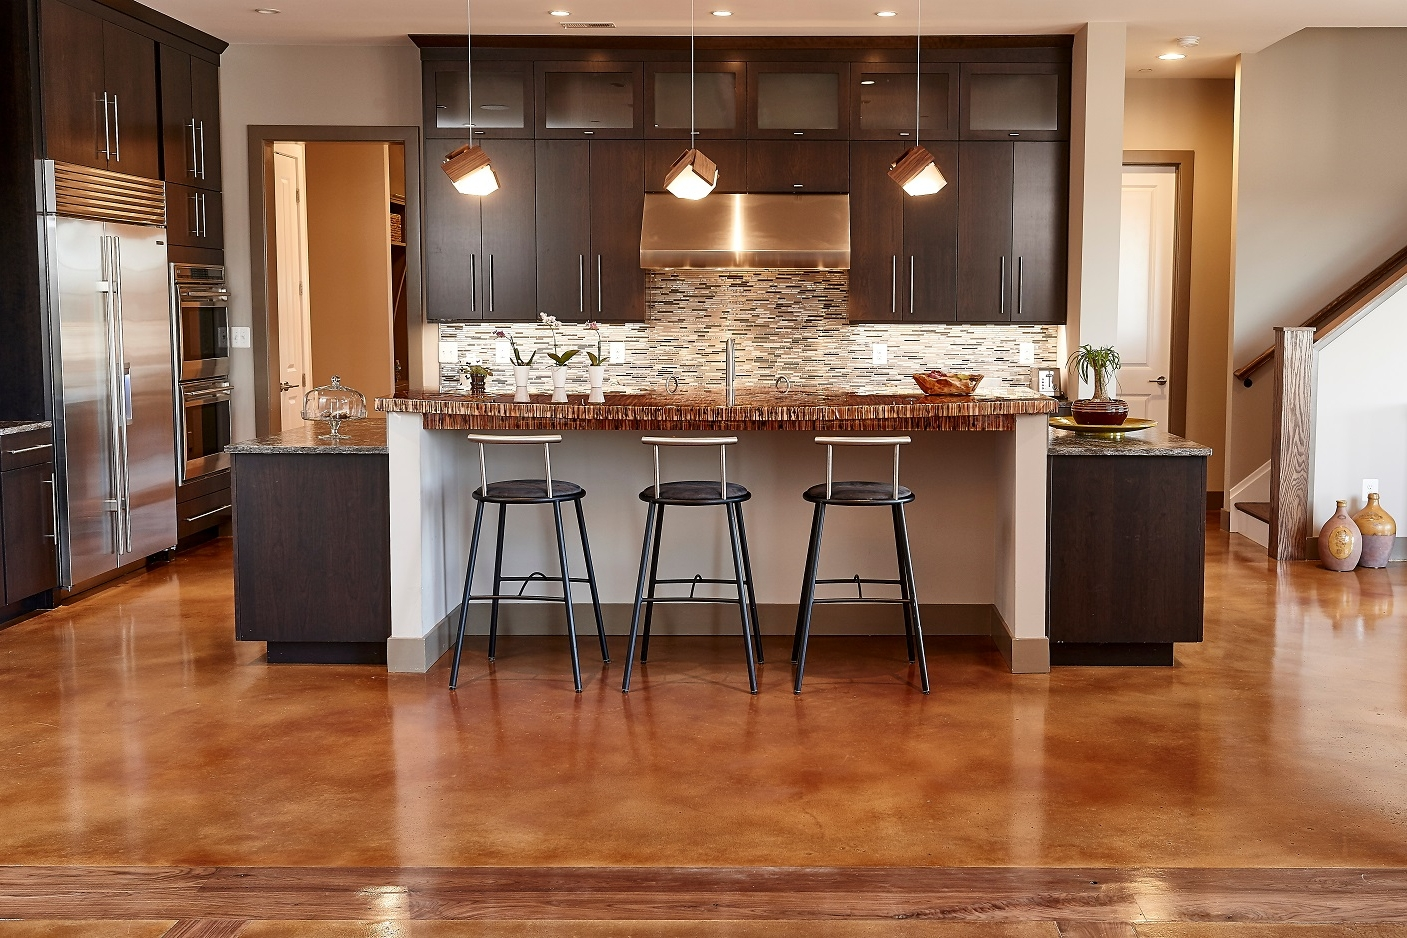 Residential wood inlay - Stained & Sealed Overlay